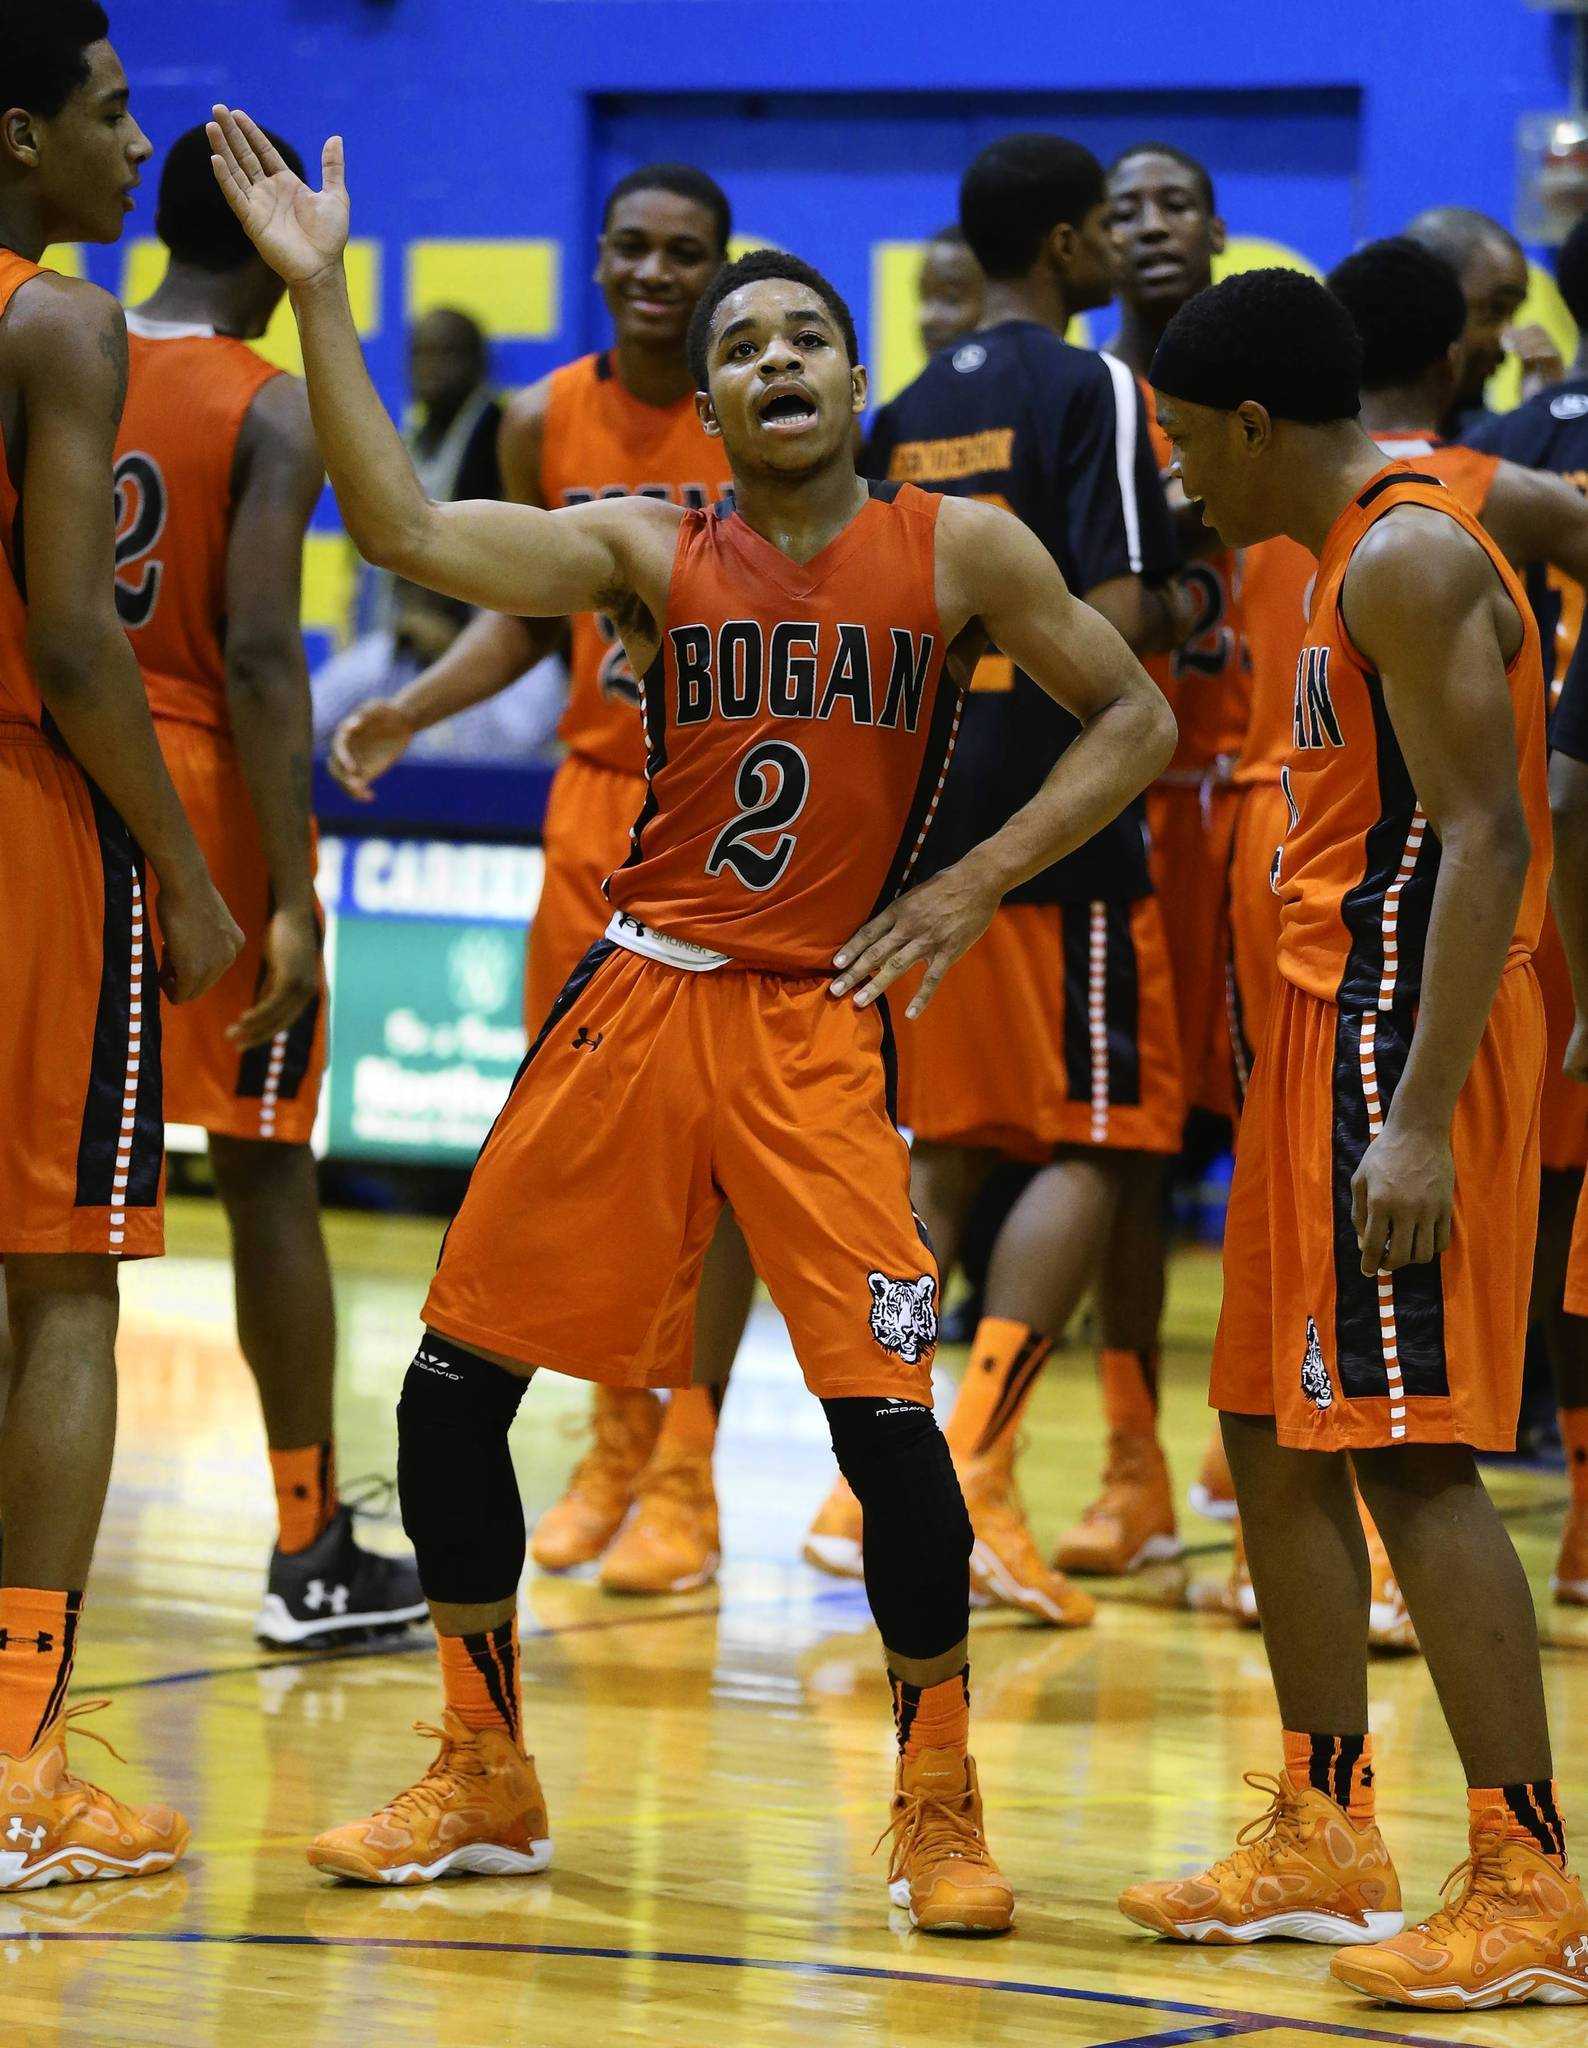 Bogan's Luwane Pipkins (third team) dances after a 59-51 win over Simeon on Tuesday, Jan. 14, 2014.